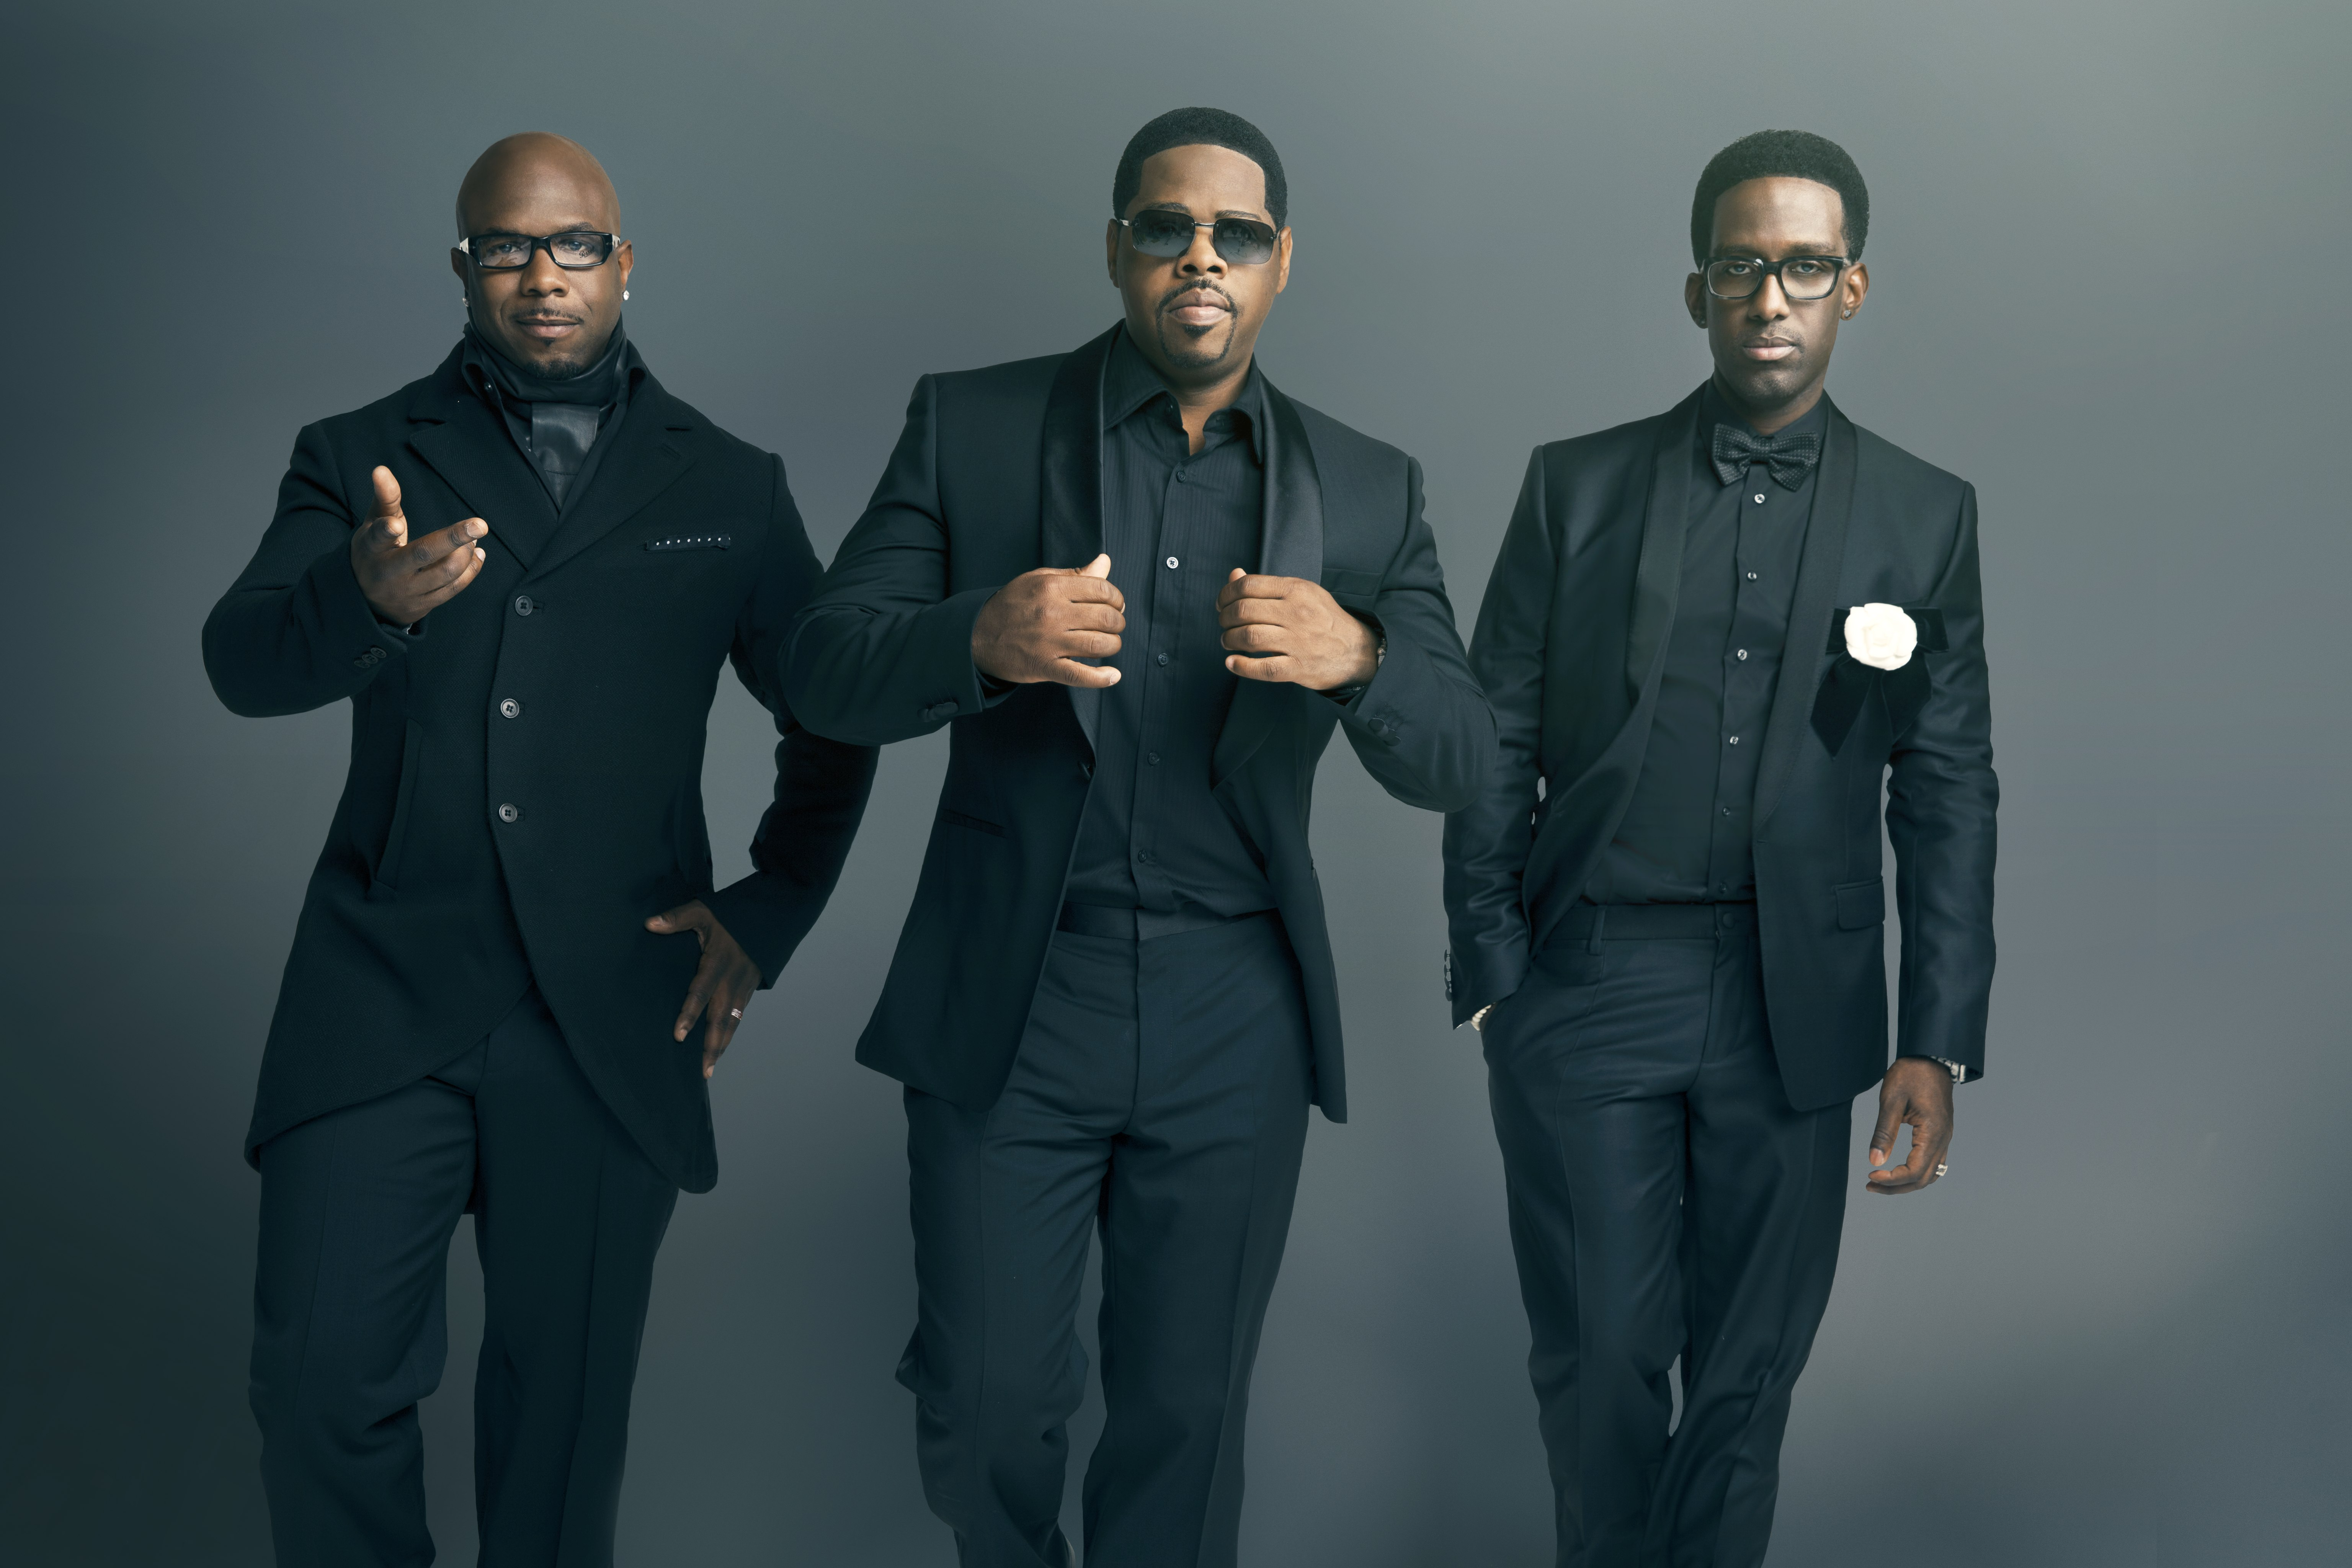 Boyz II Men on SurvivingMarriageTips.com